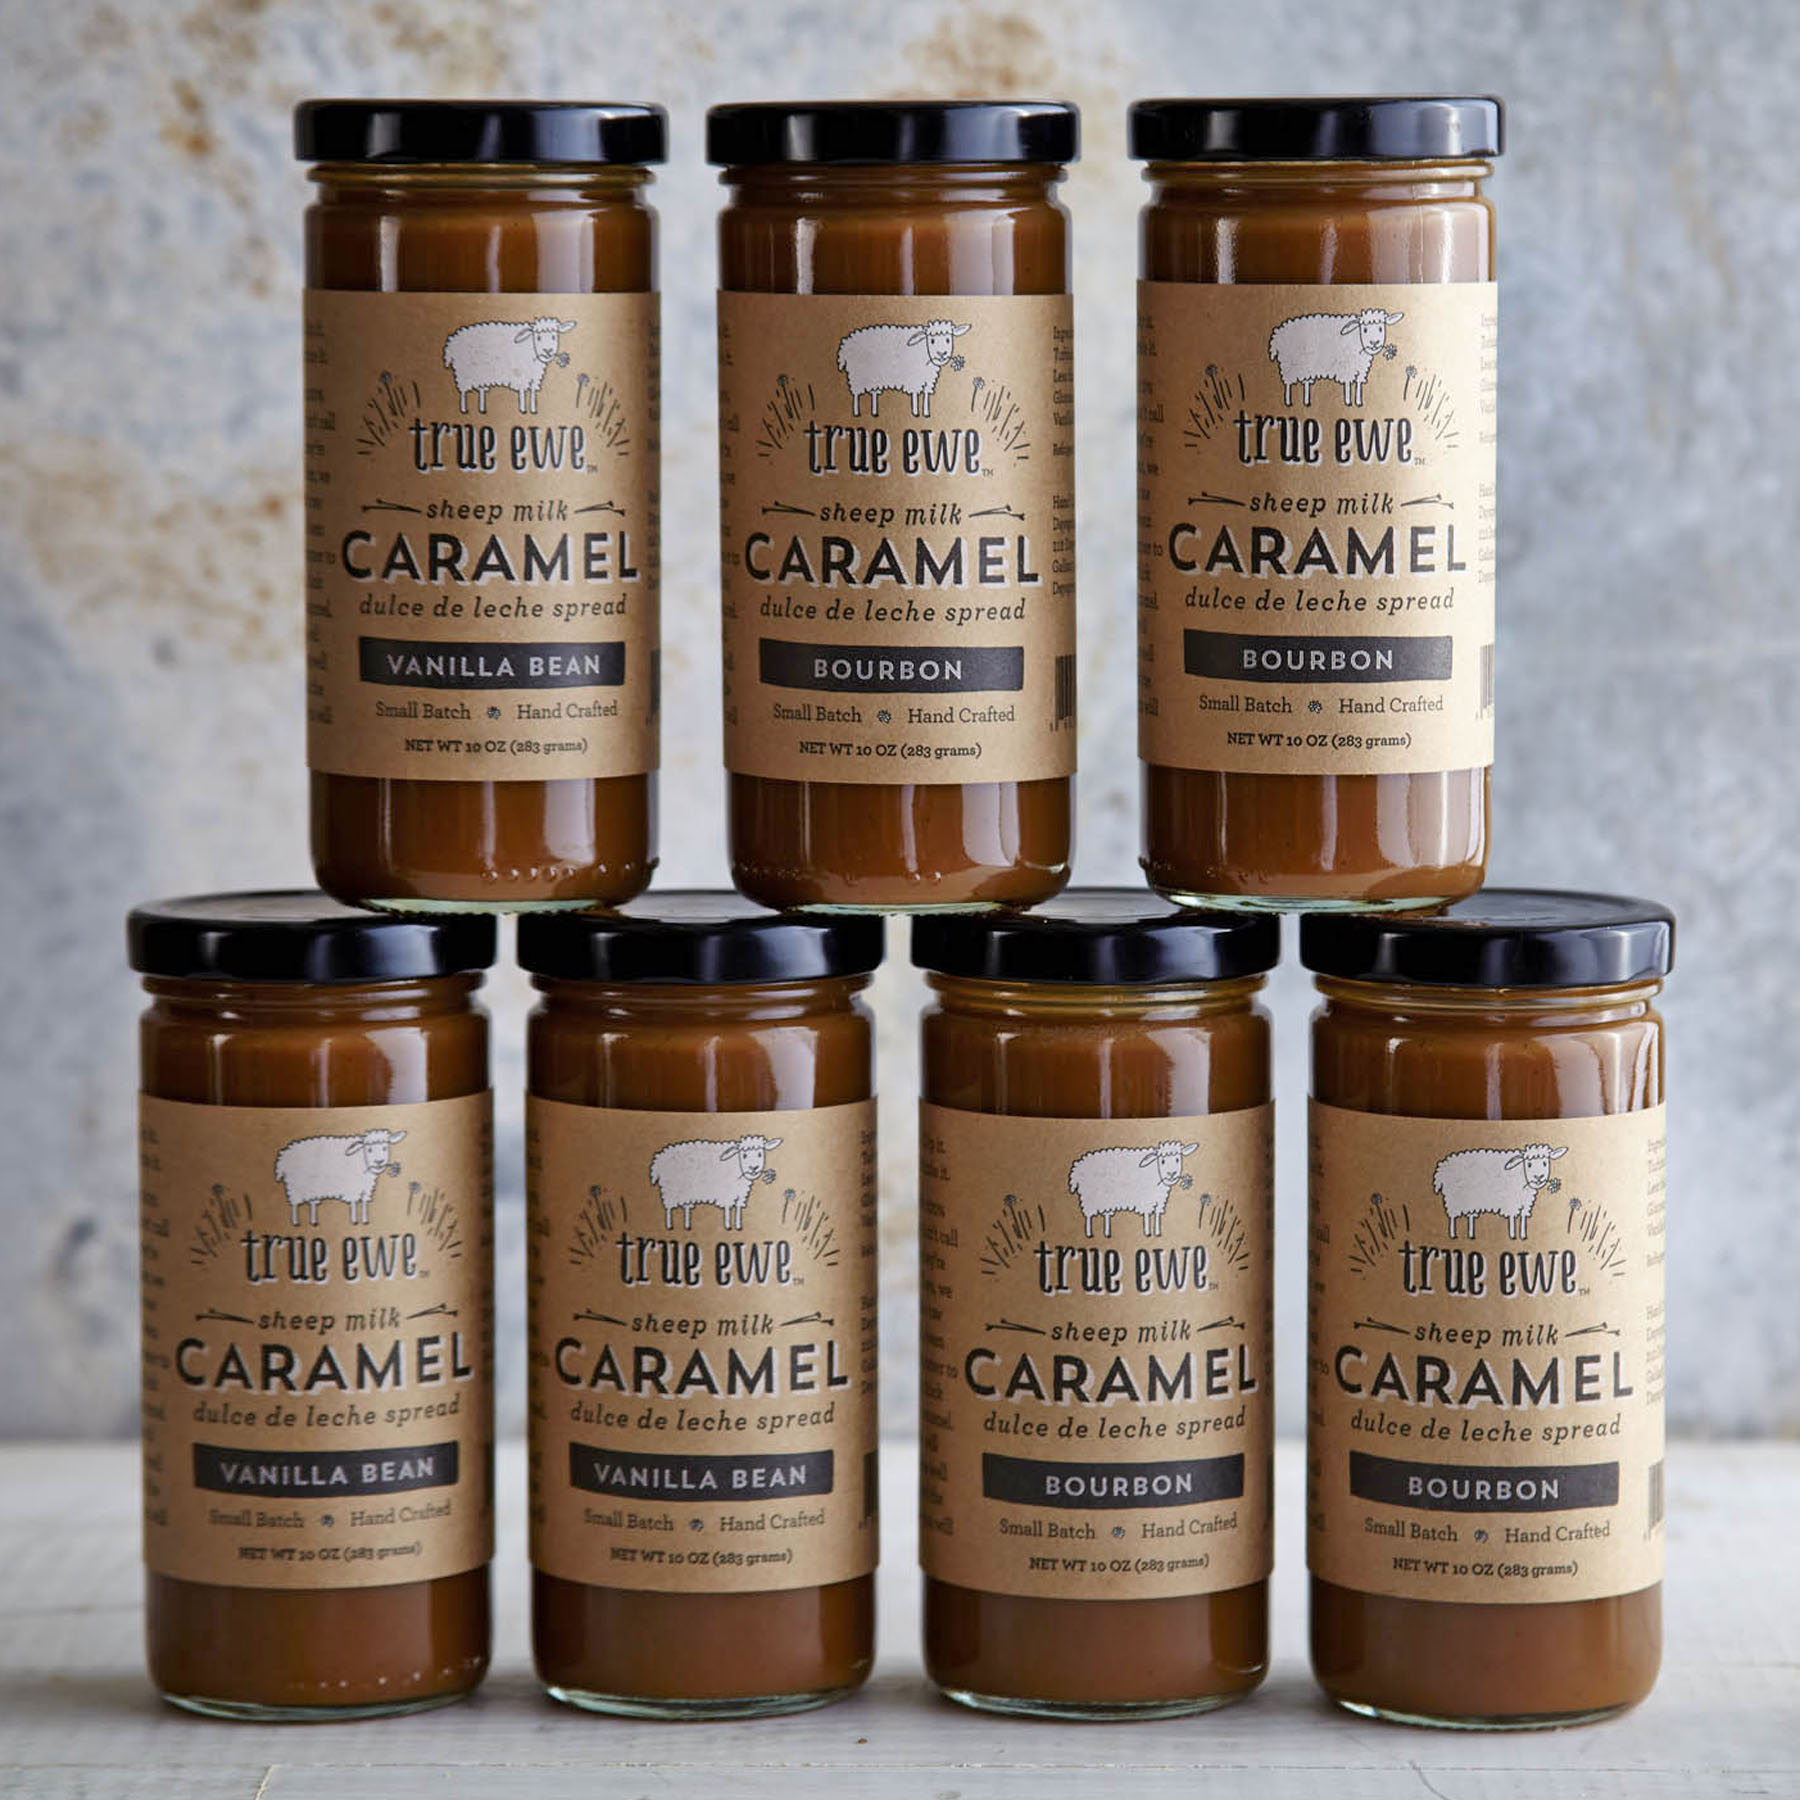 https://alabama-travel.s3.amazonaws.com/partners-uploads/photo/image/578515e1fa4396bf95000096/caramel_jars_square.jpg